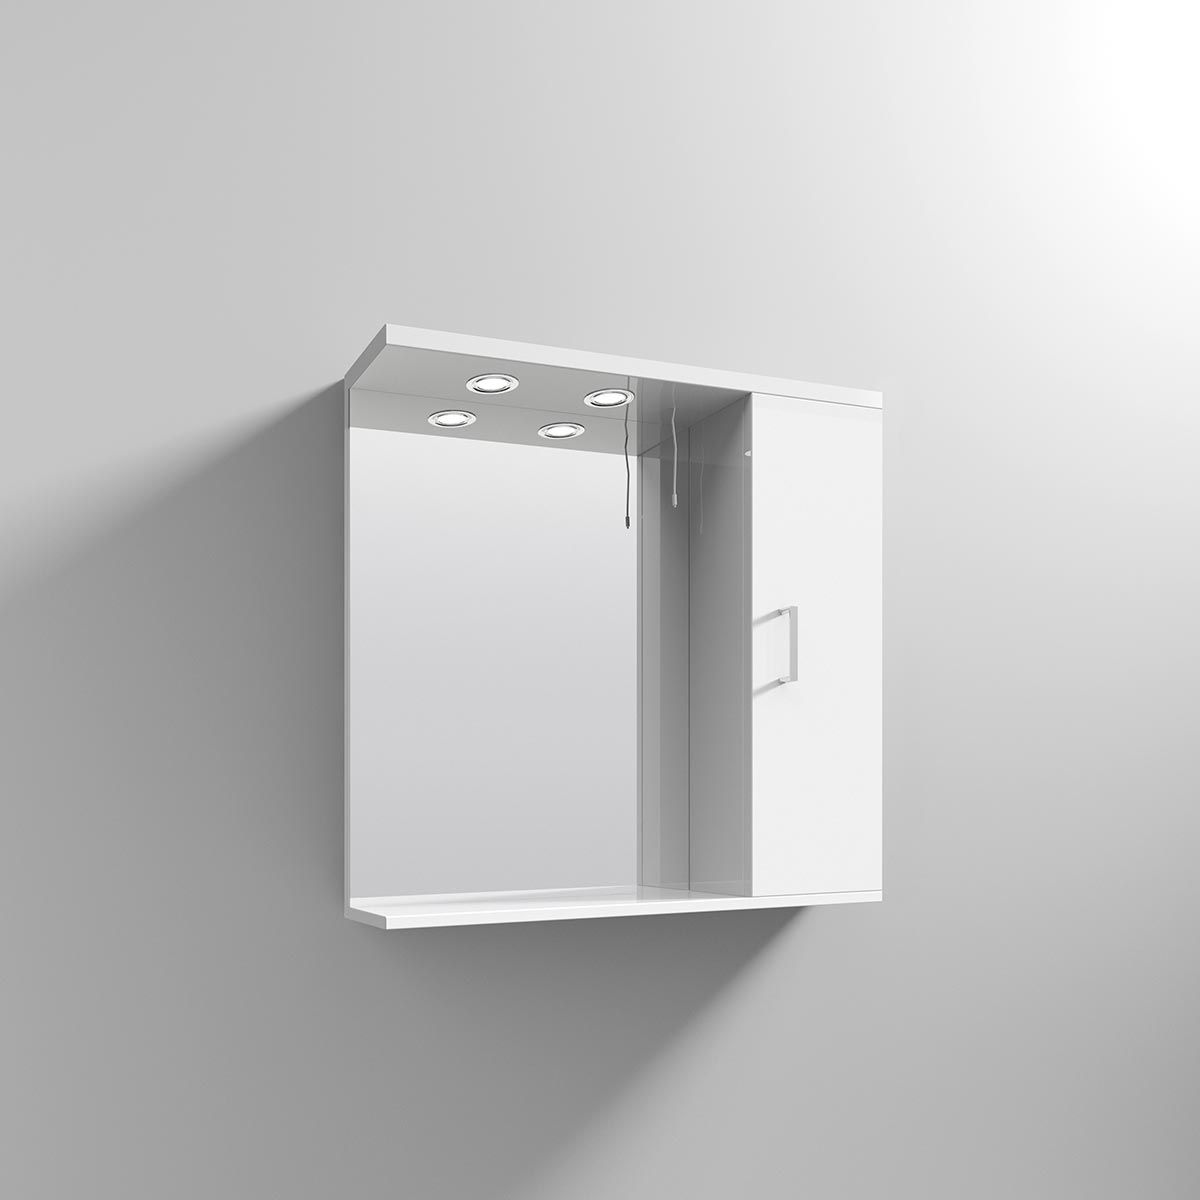 Nuie High Gloss White Bathroom Mirror Cabinet with Lights 750mm